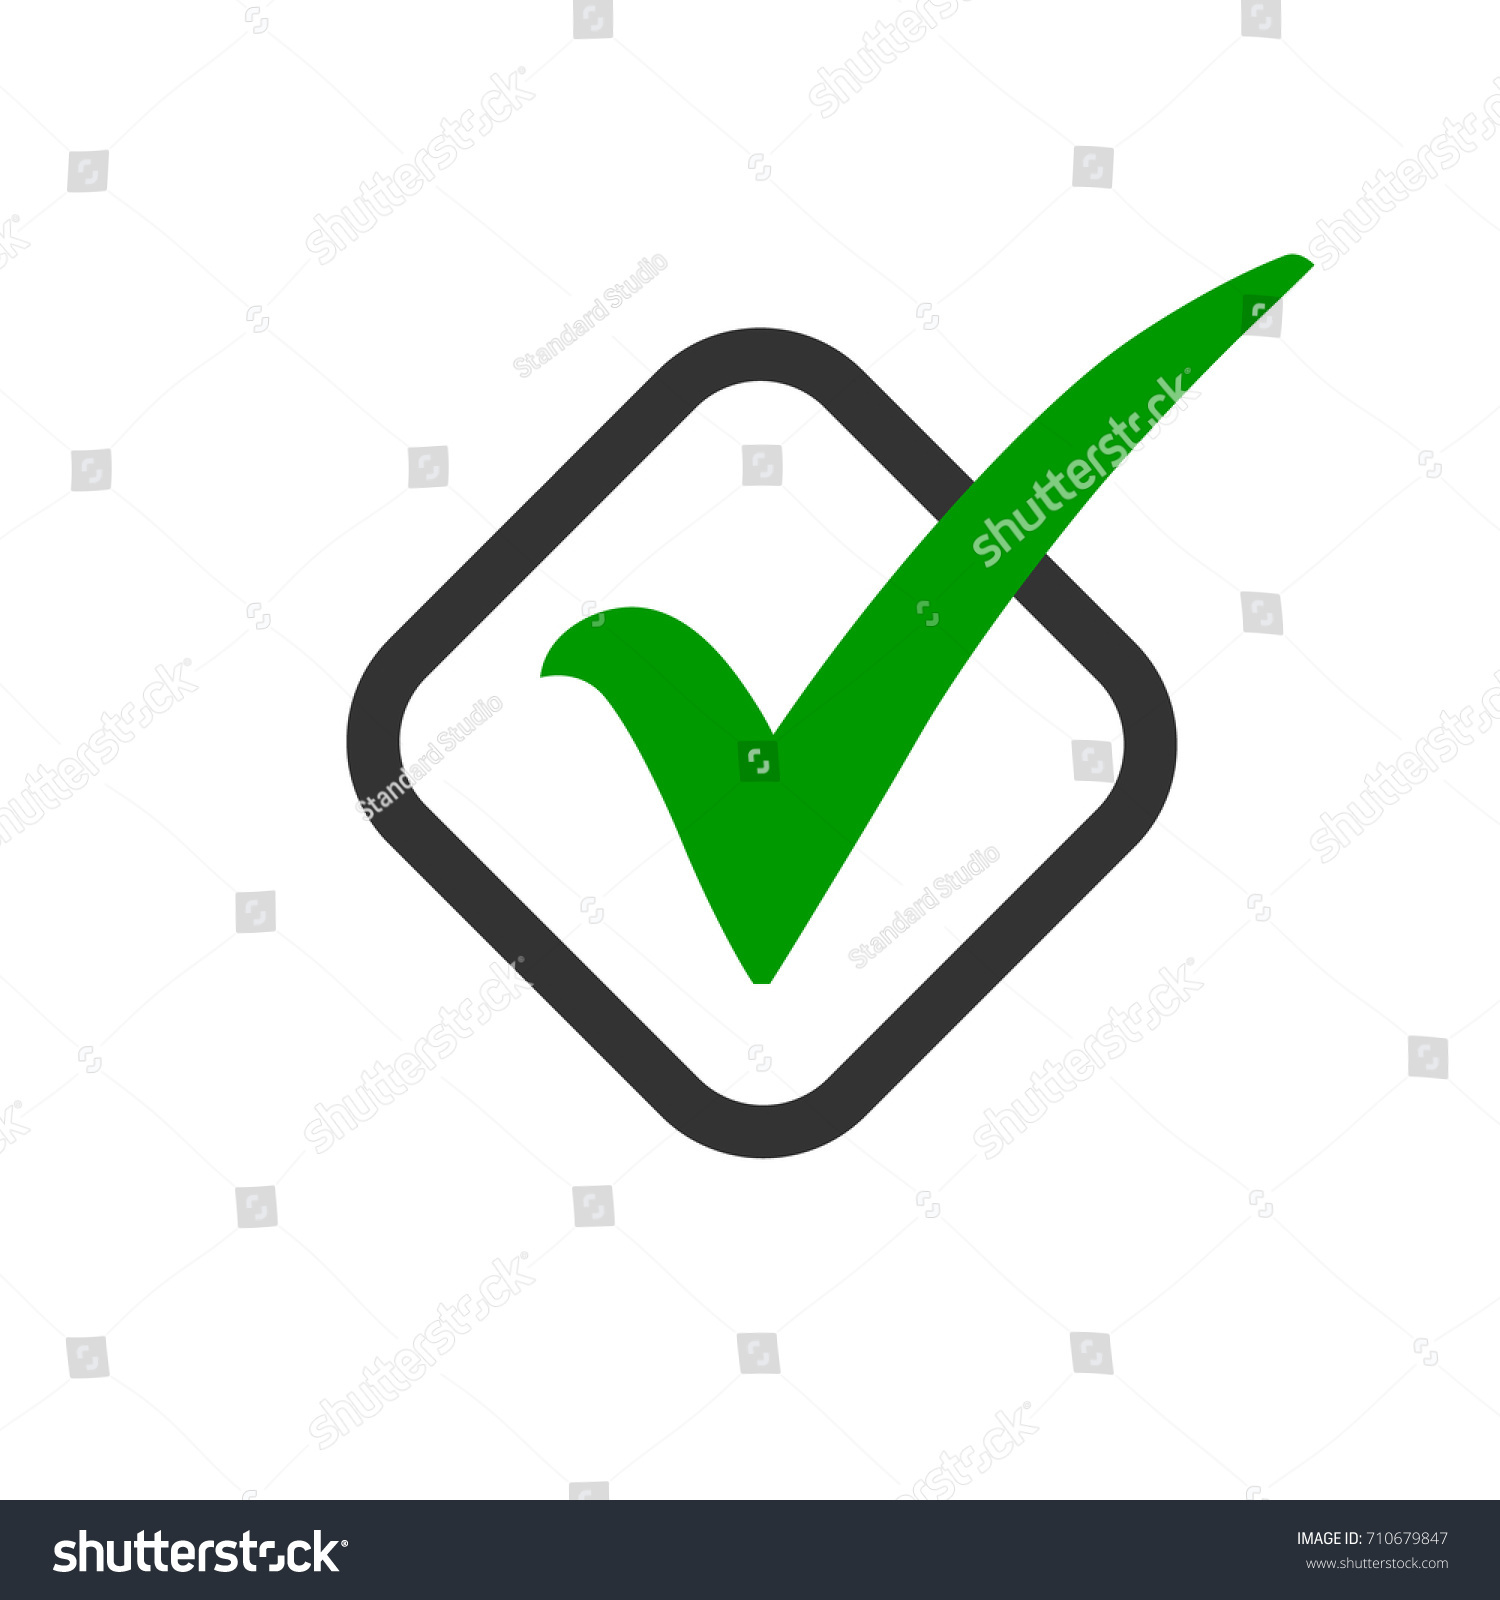 Green check mark icon black outlined stock vector 710679847 green check mark icon in a black outlined box tick symbol in green color biocorpaavc Image collections